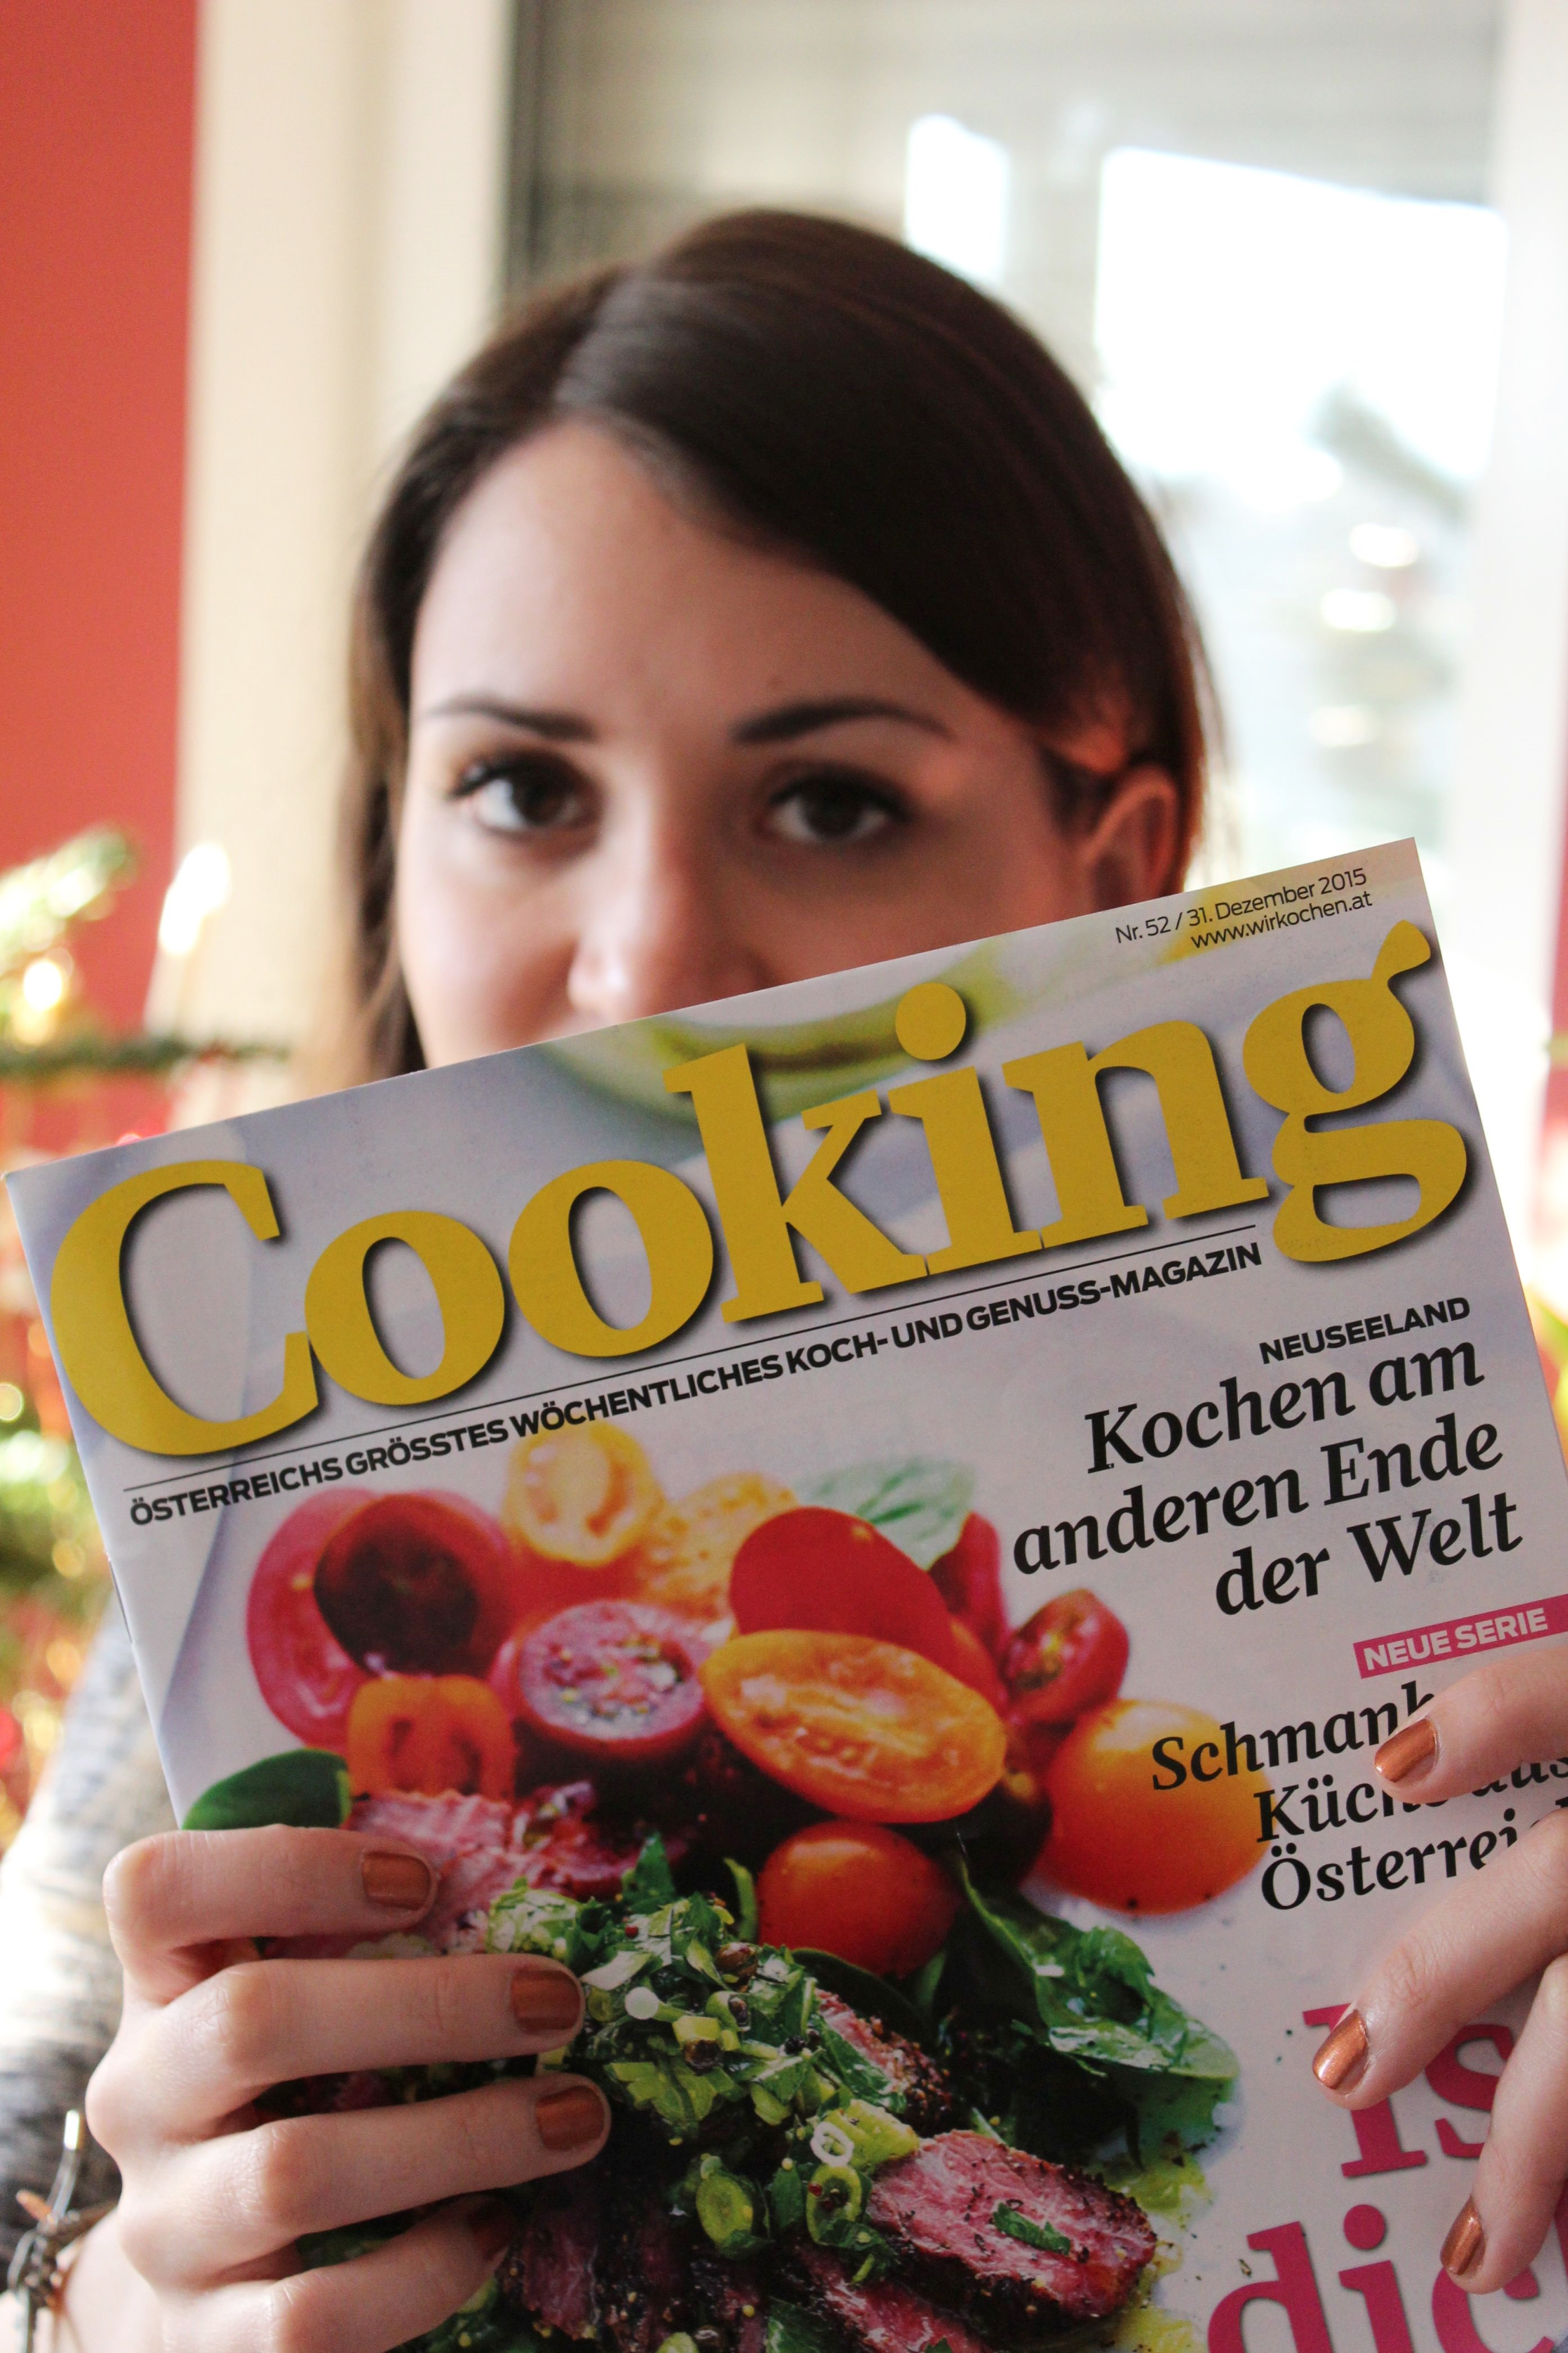 Cooking Magazin (1)